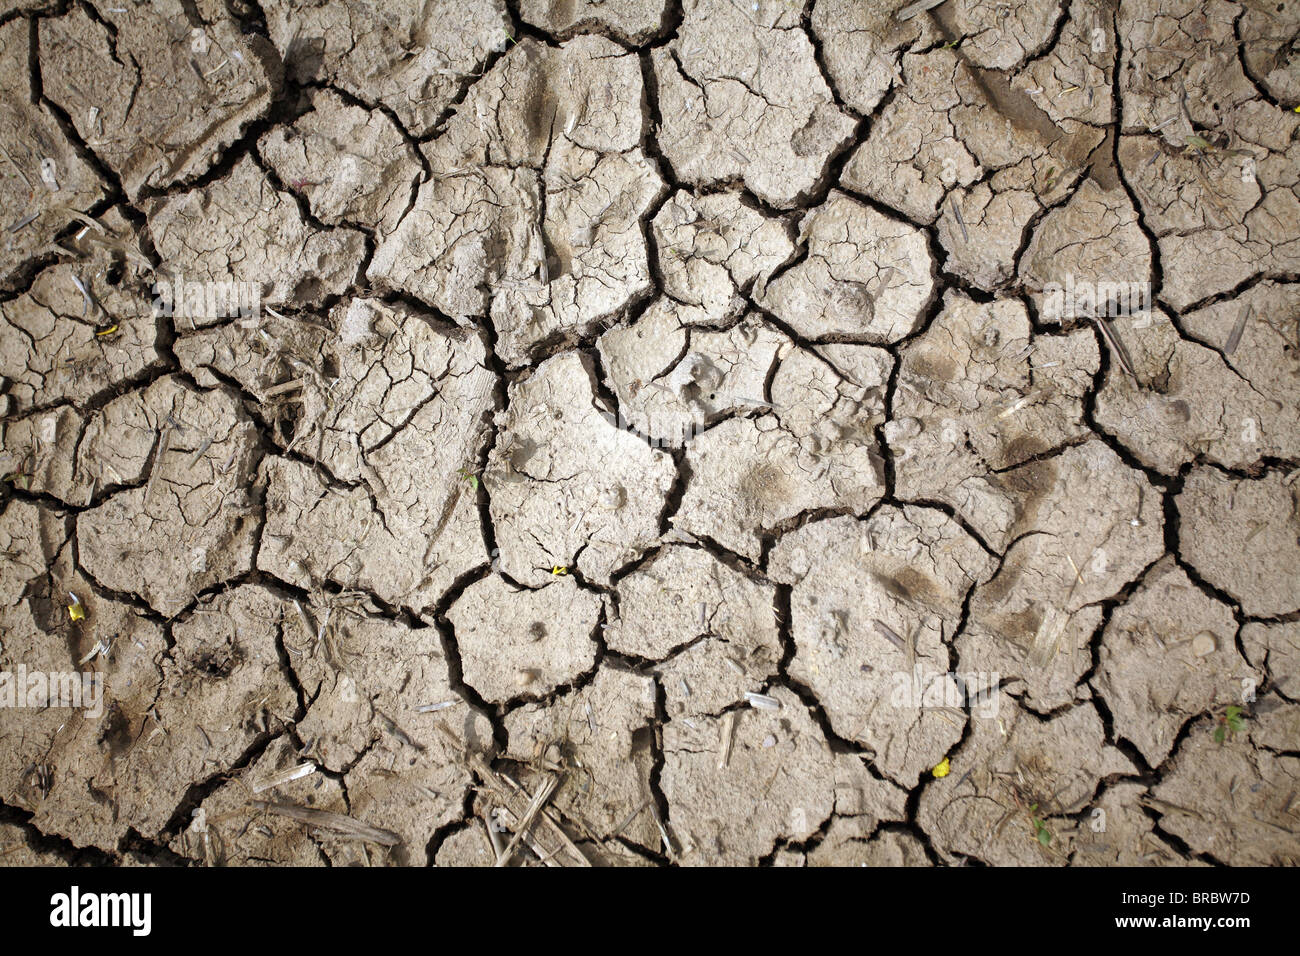 Parched land - Stock Image